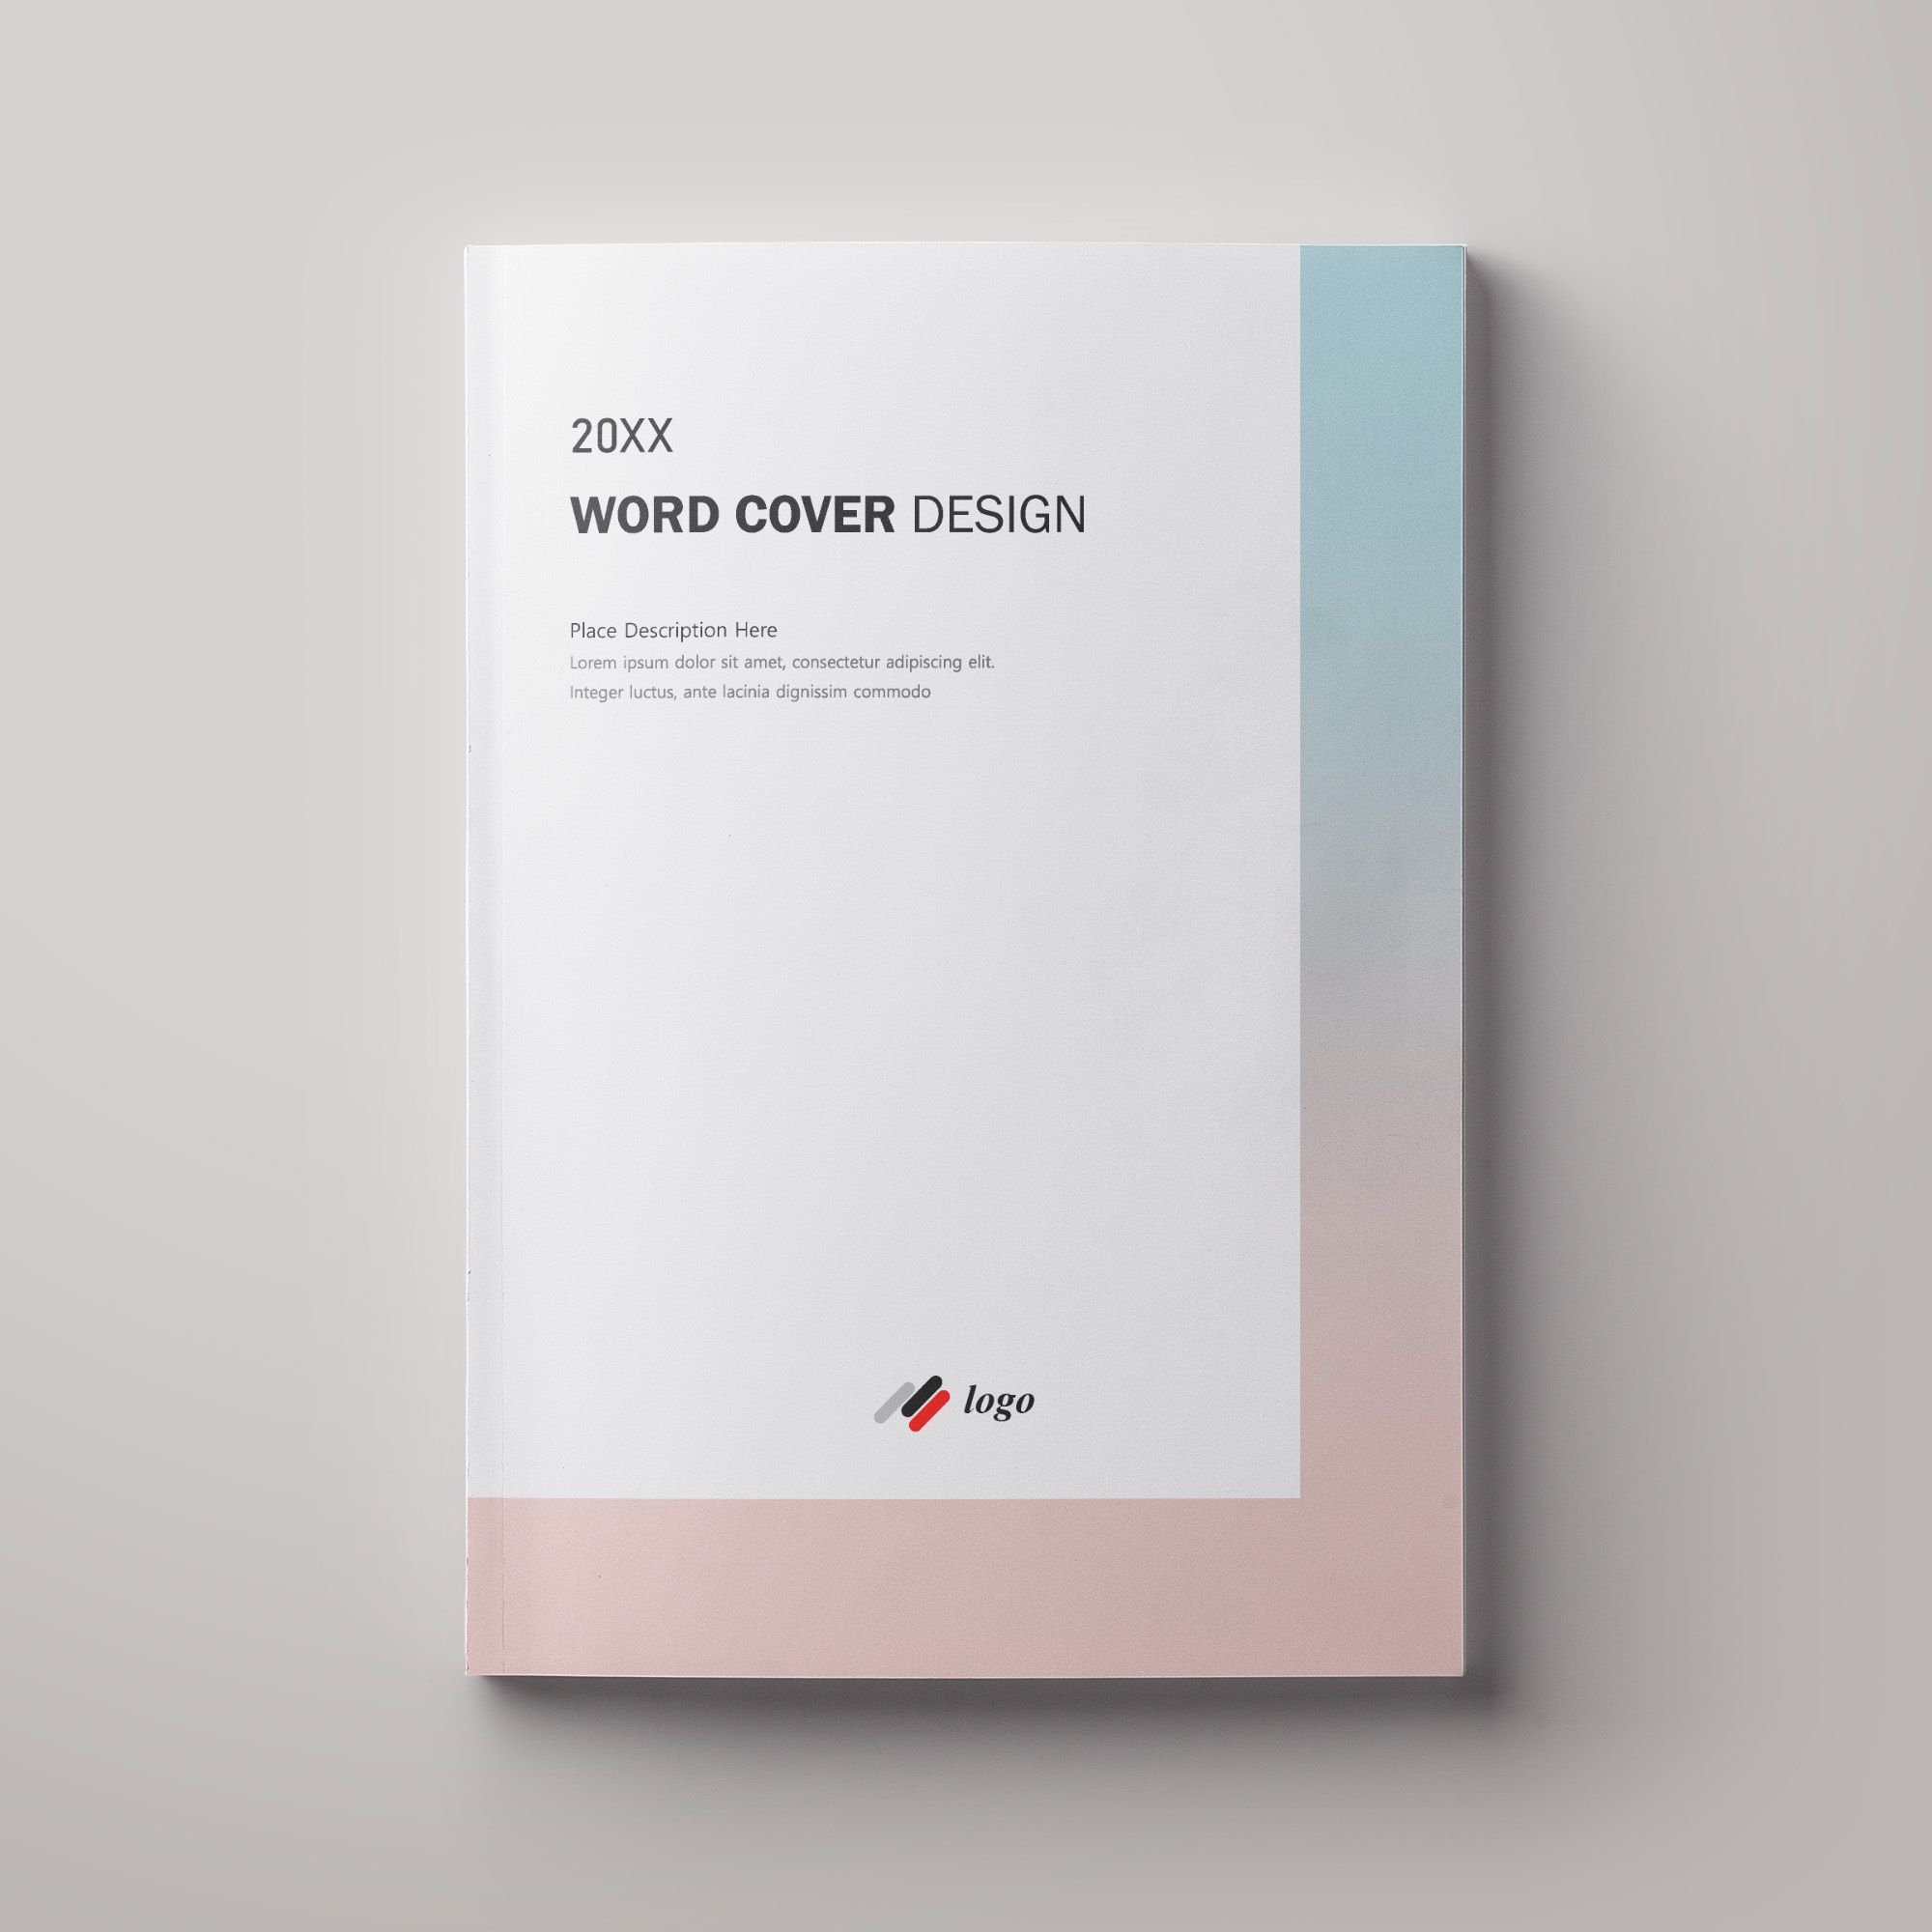 Microsoft Word Cover Templates 72 Free Download In 2021 Word Template Design Cover Page Template Word Cover Template